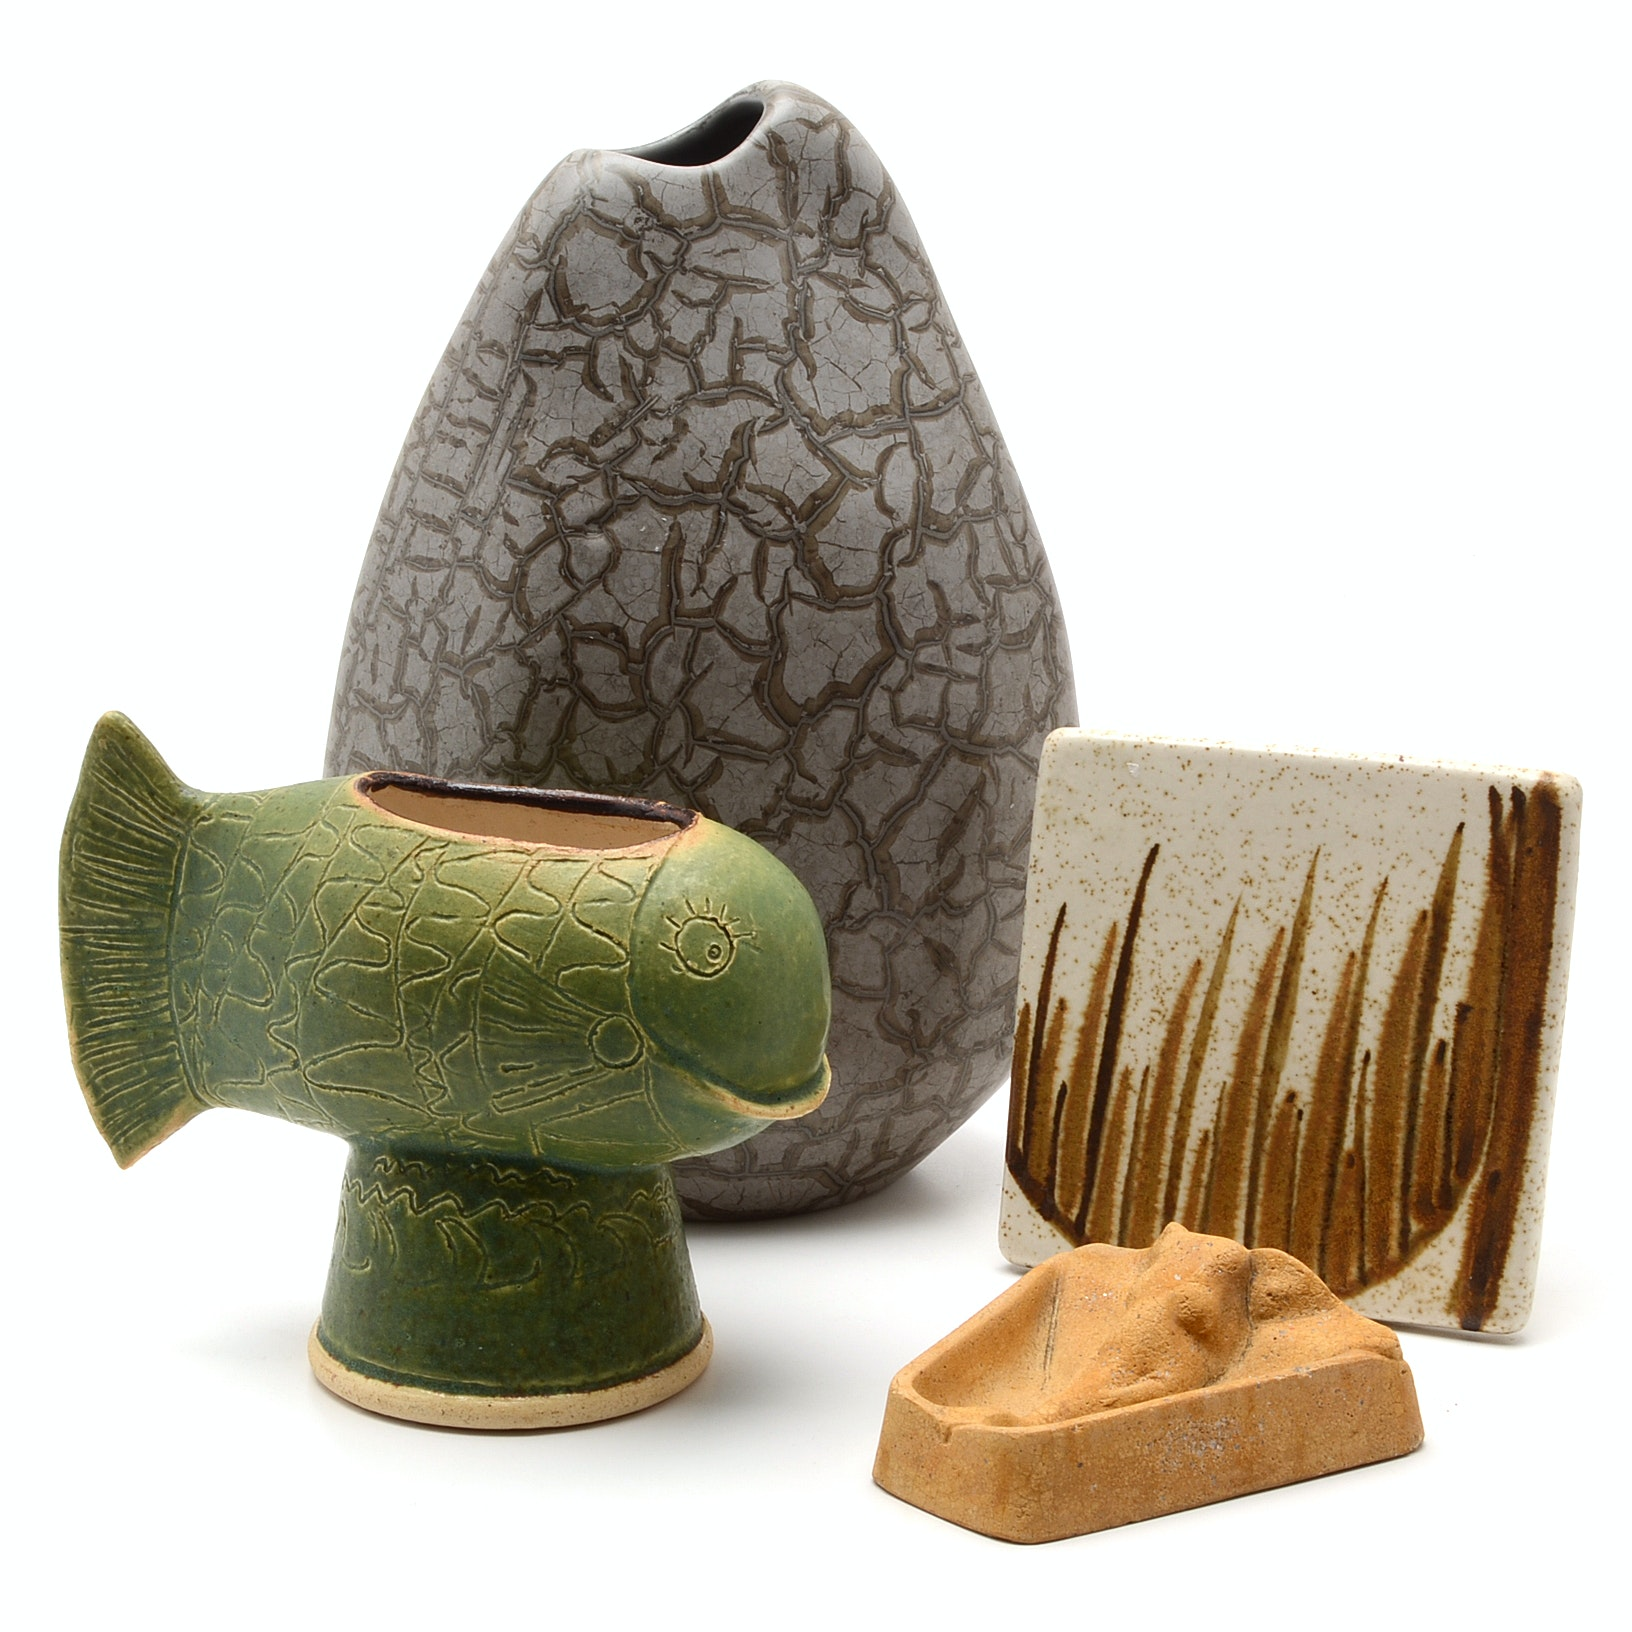 Grouping of Ceramic and Stoneware Items